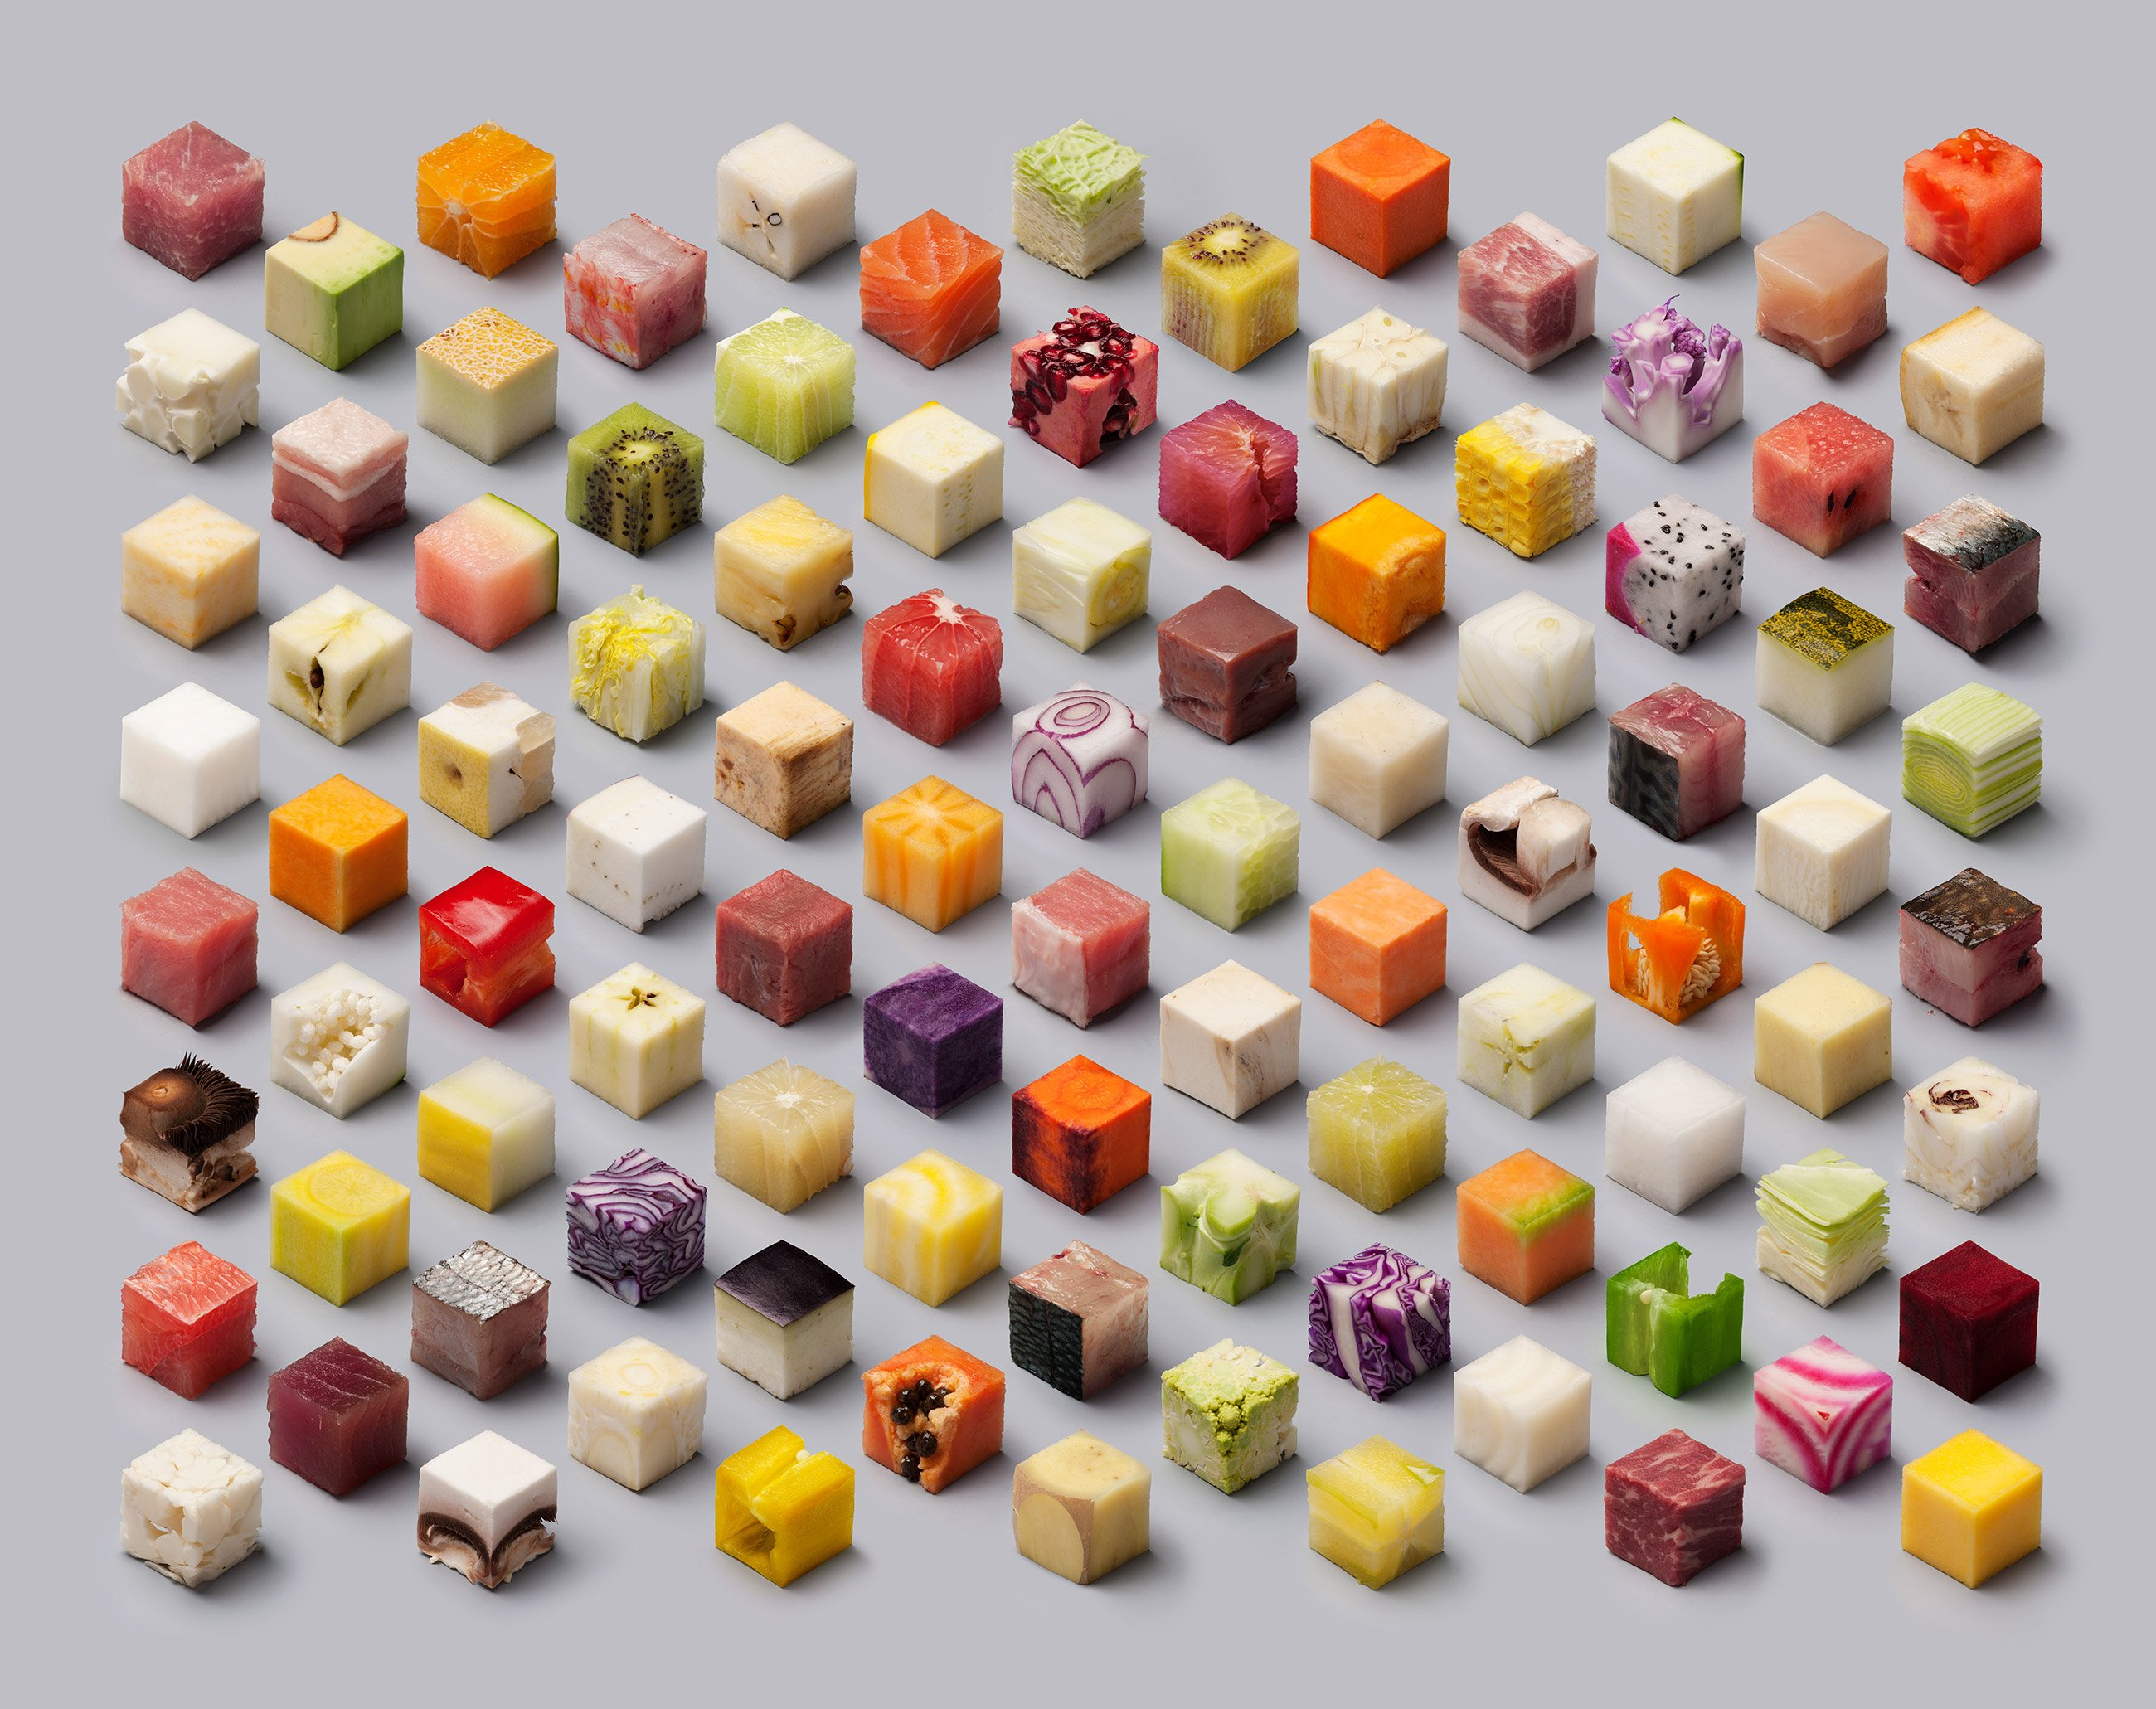 Food Cubes Hd Wallpaper